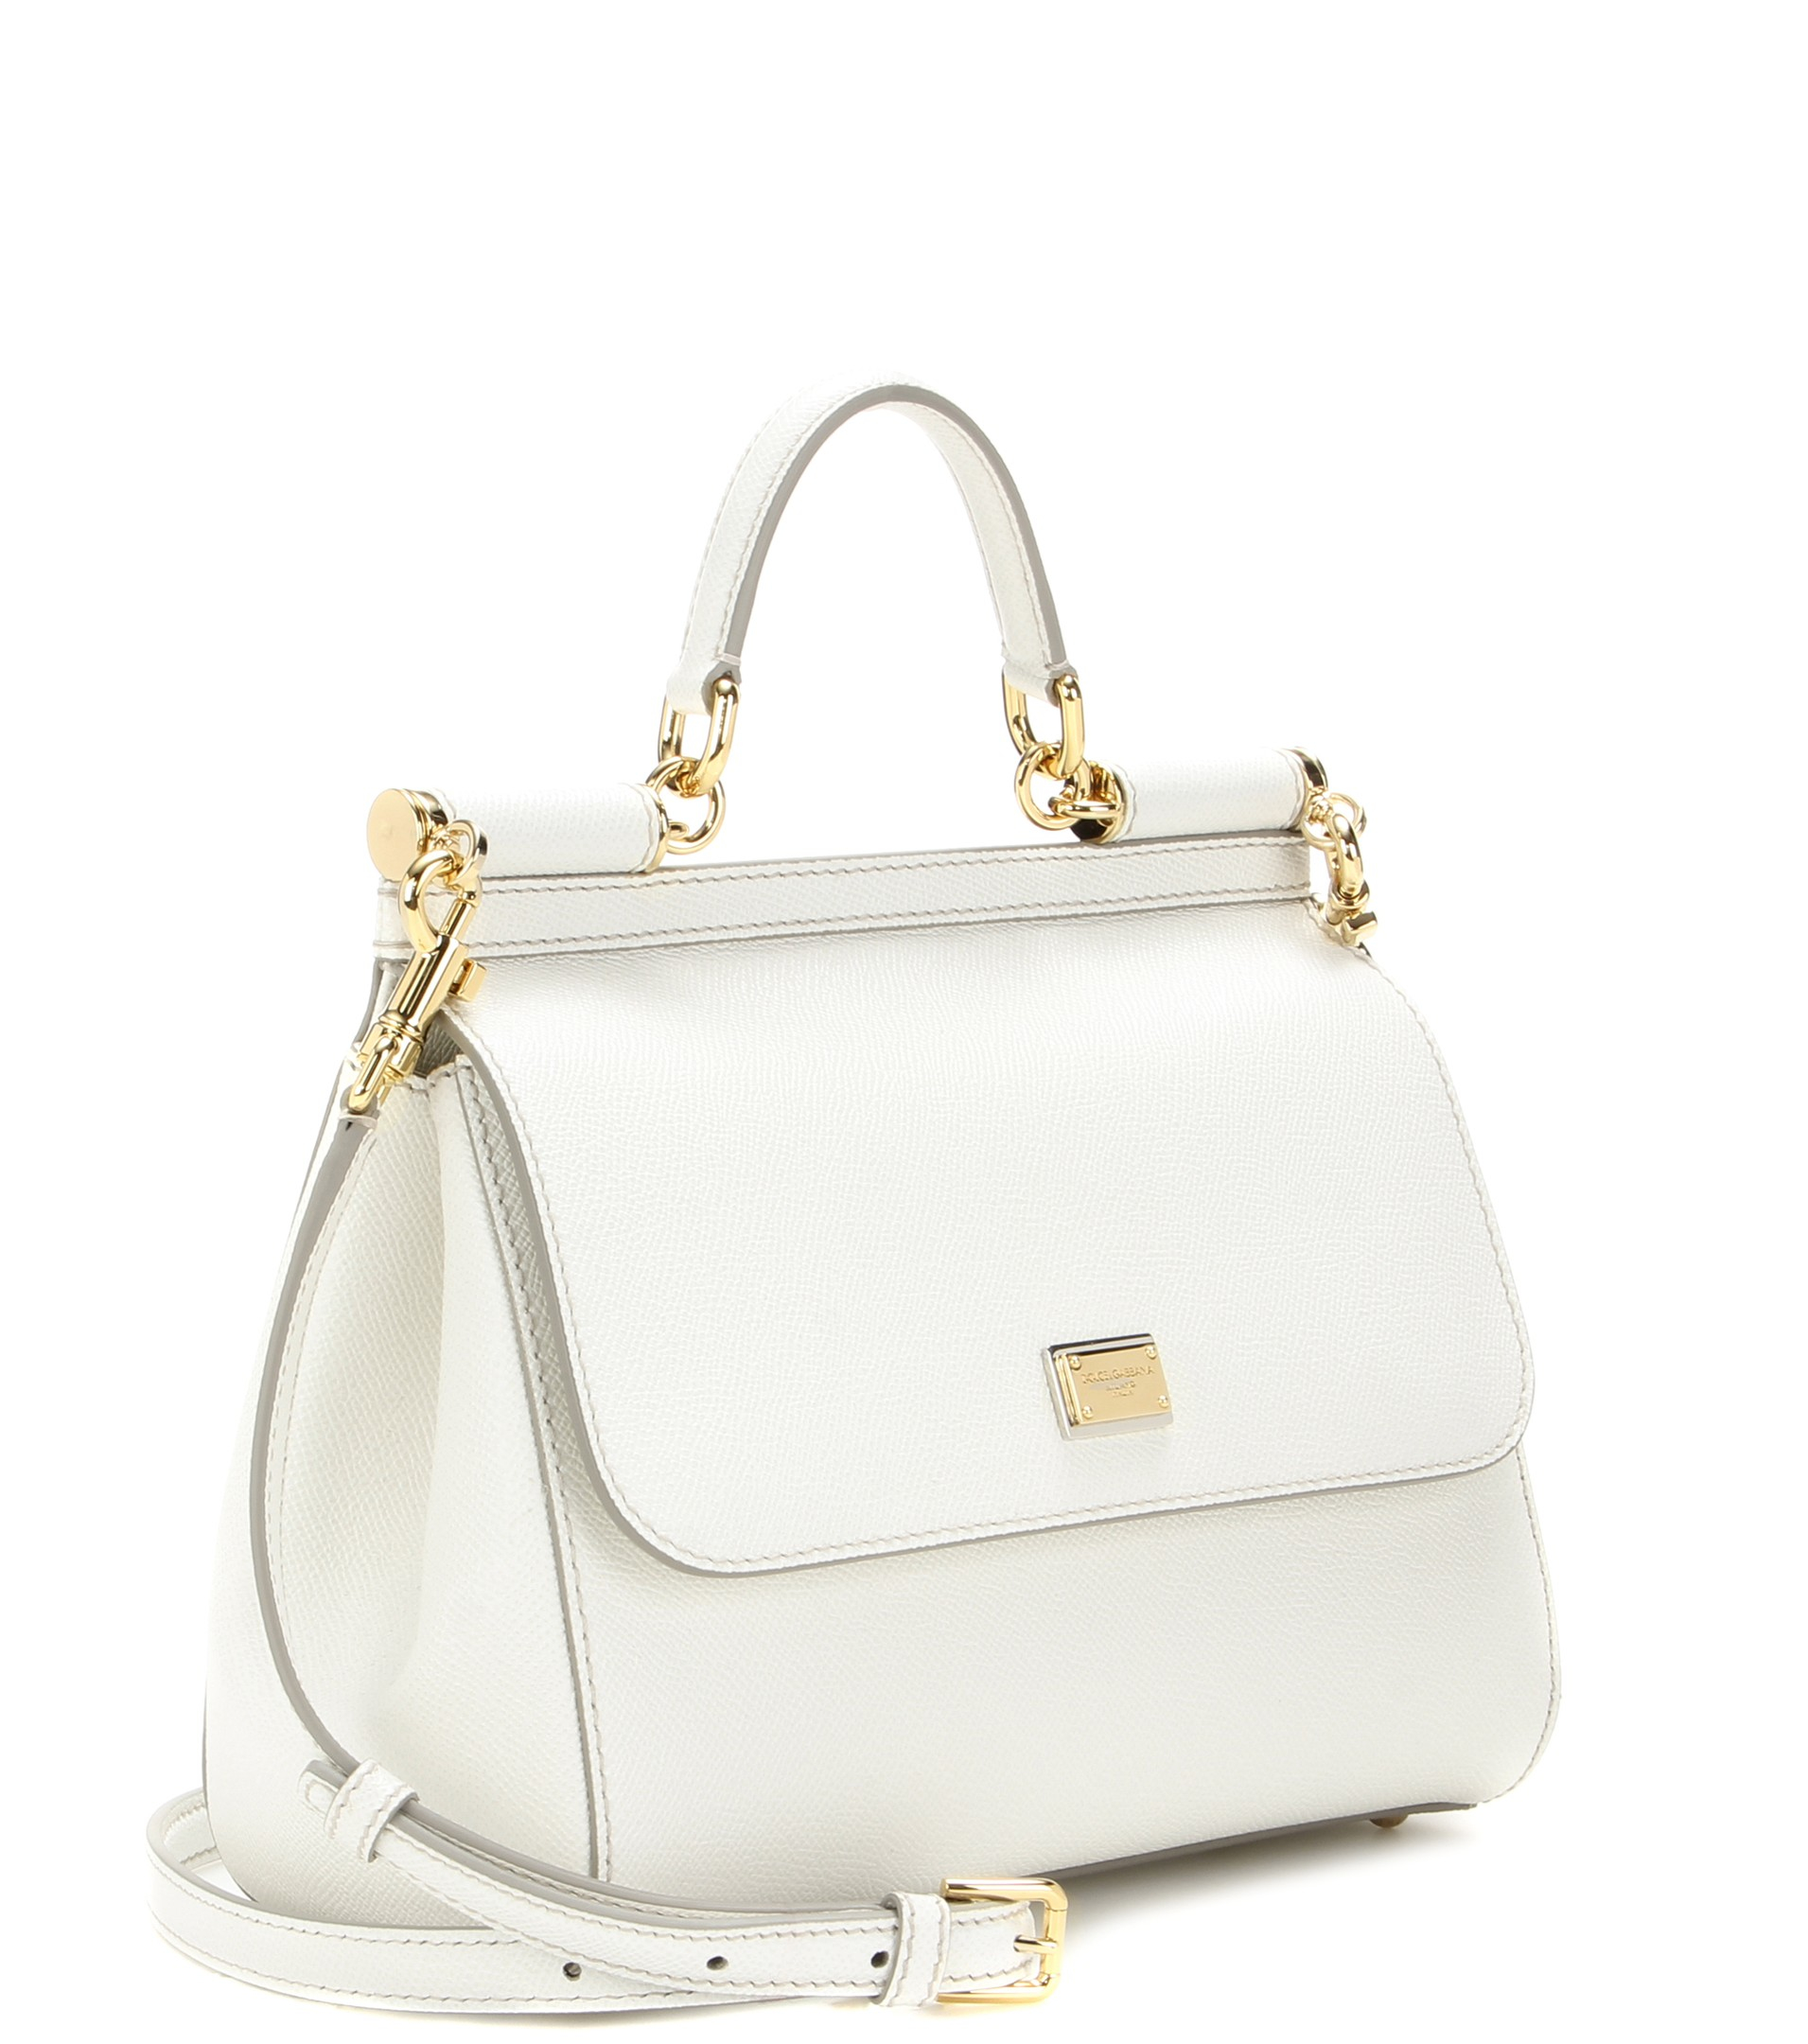 087d25b34f31 Lyst - Dolce   Gabbana Miss Sicily Medium Leather Shoulder Bag in White